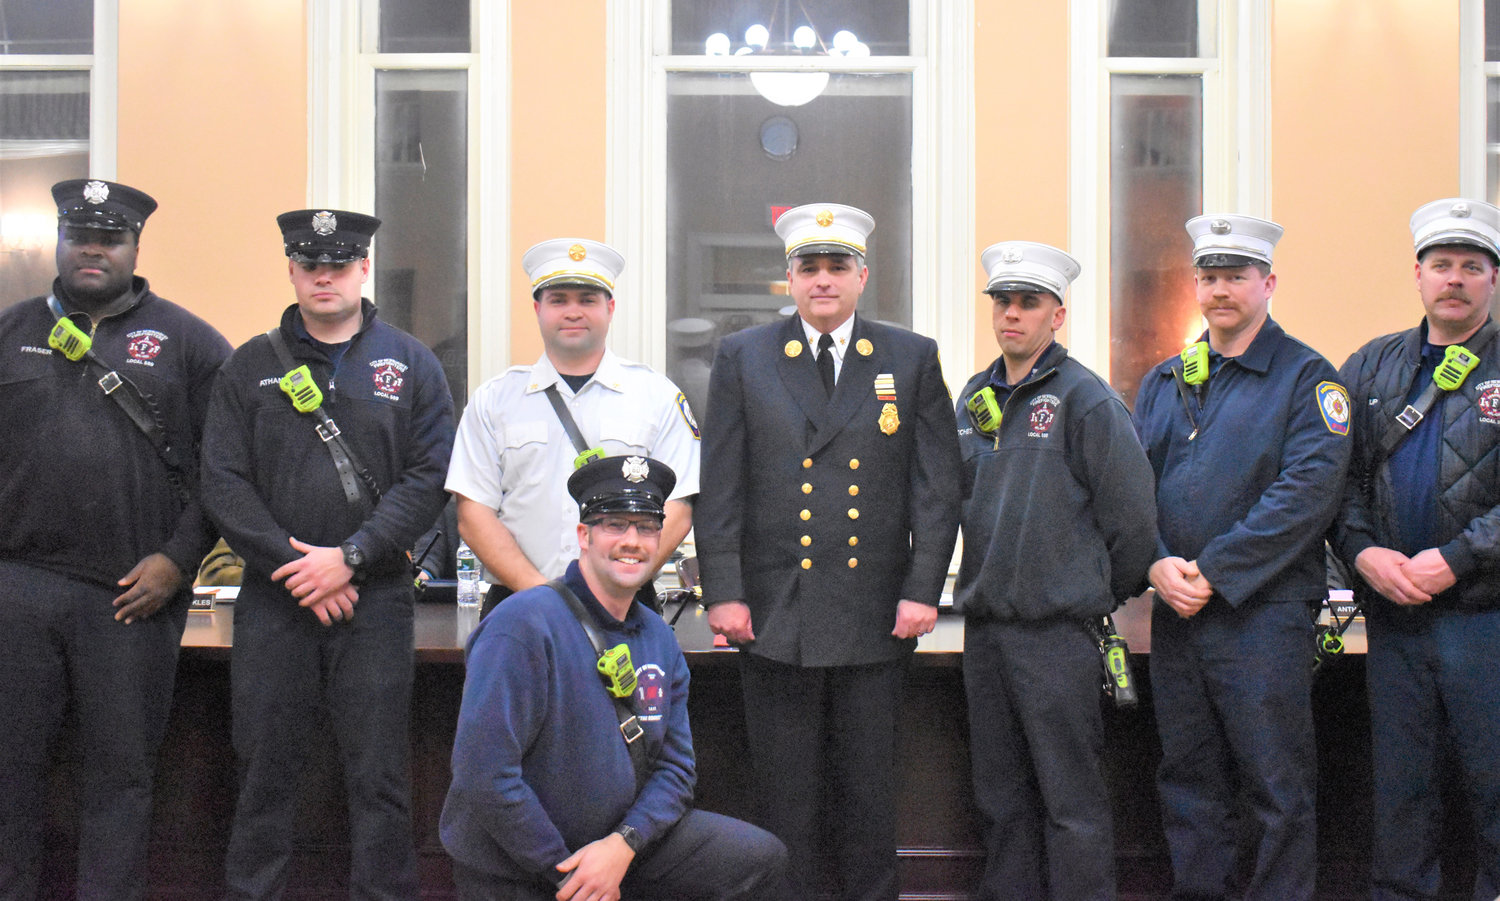 Chief William Horton [middle] poses with some of the City of Newburgh Fire Department.